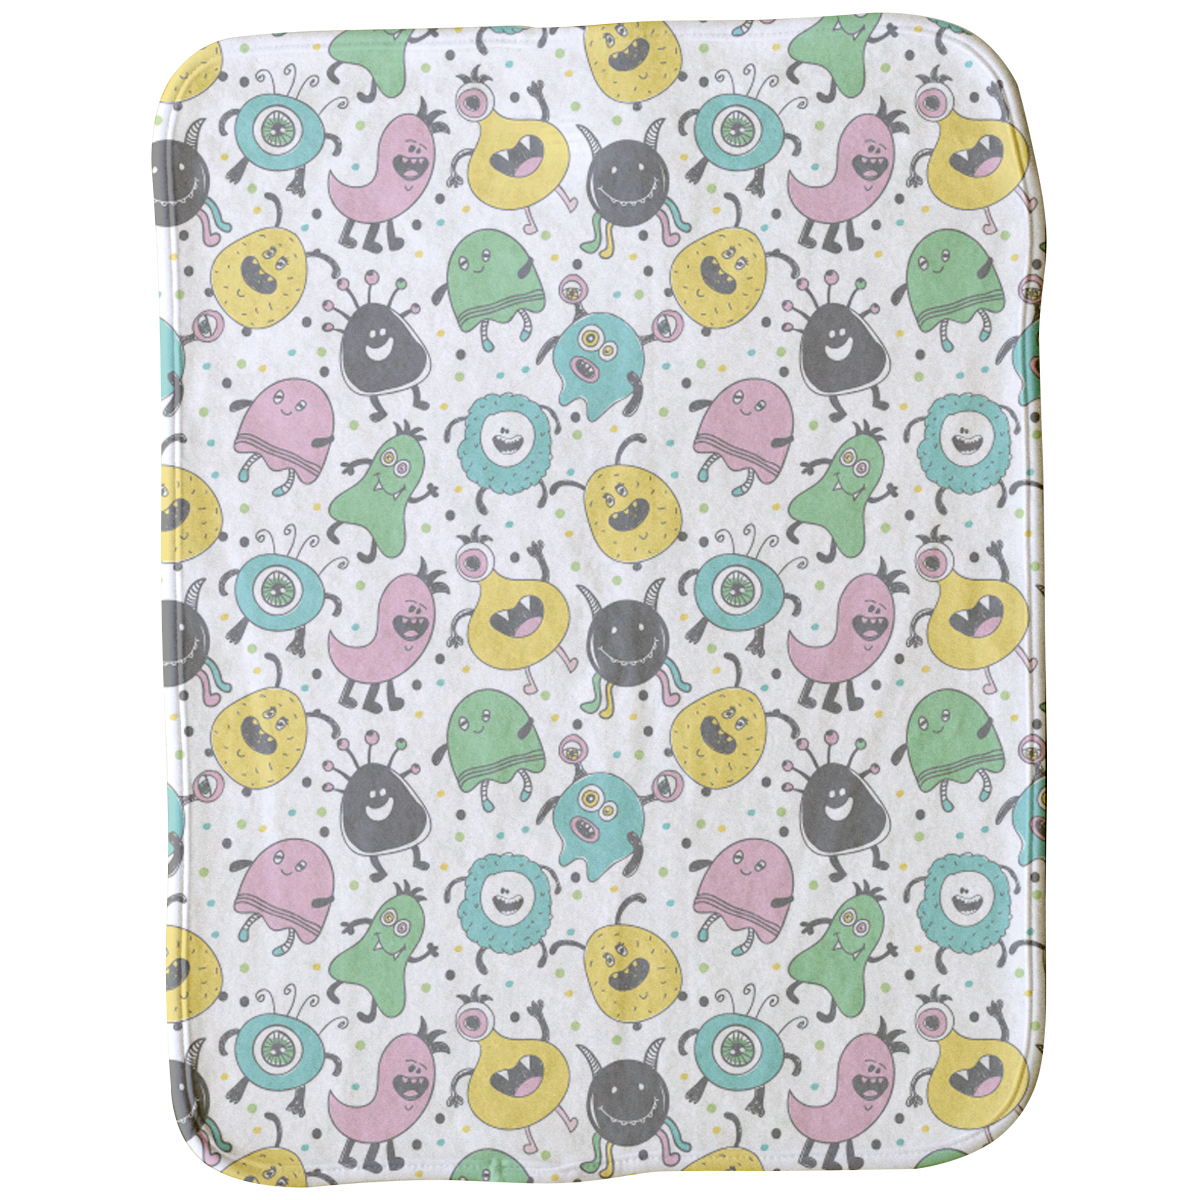 Little Monsters Burp Cloth